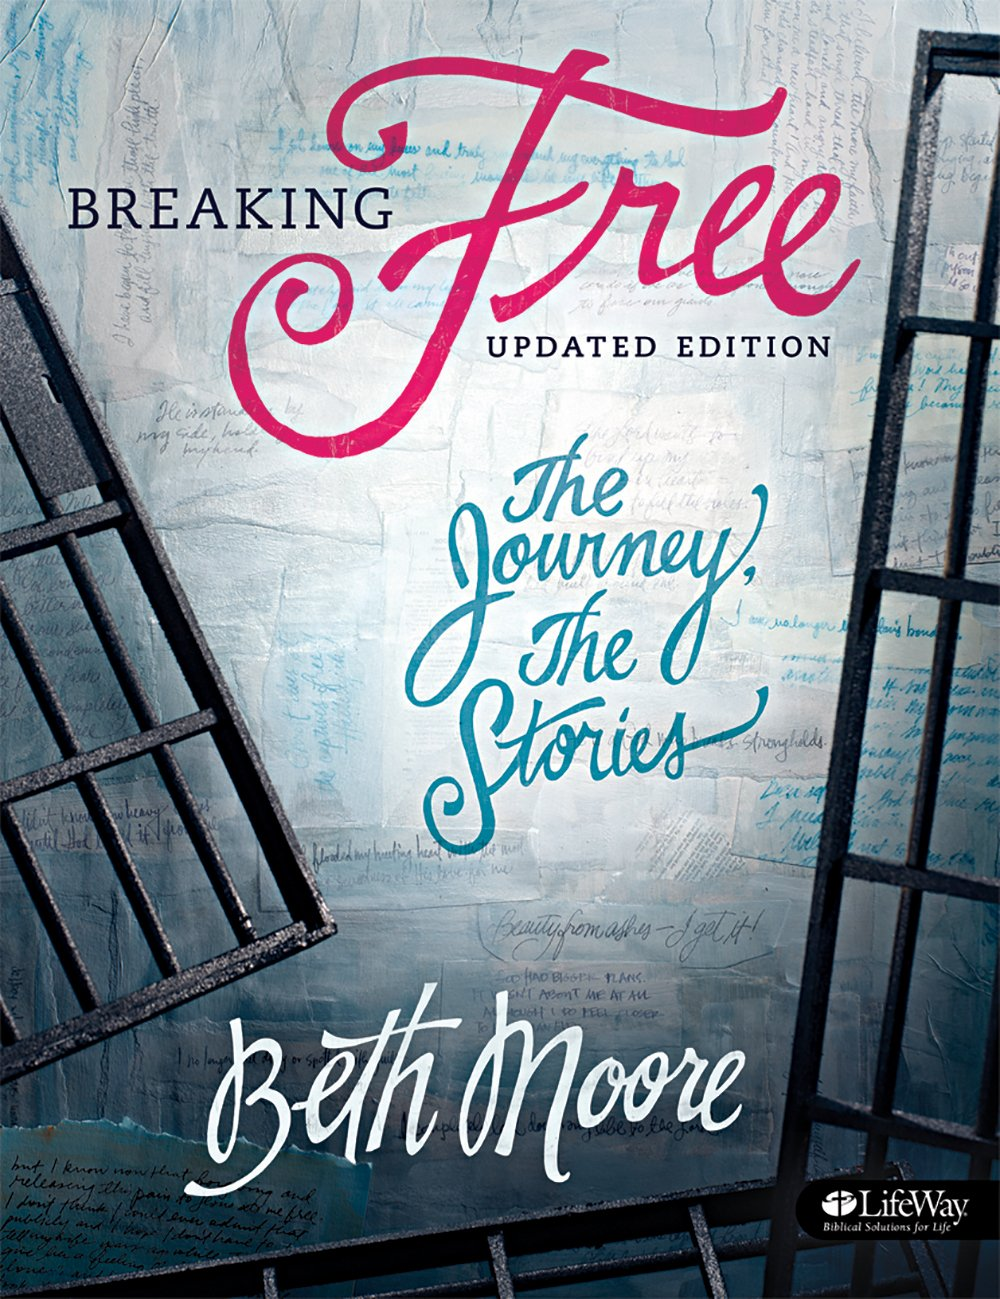 Breaking Free (Bible Study Book): The Journey, The Stories by Lifeway Church Resources